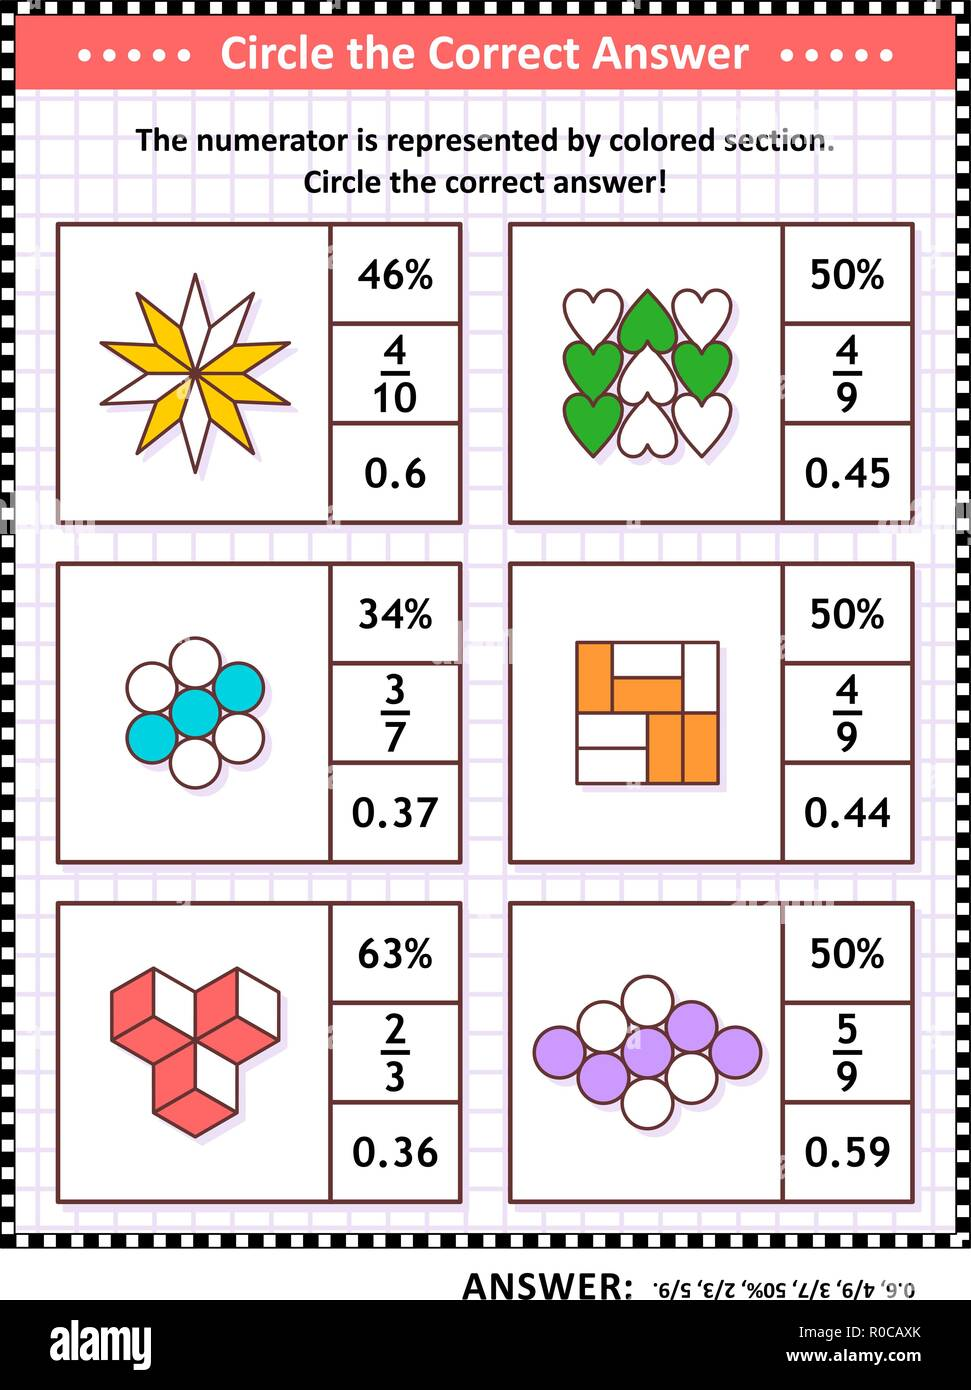 Math skills training visual puzzle or worksheet. Circle the correct answer. Find the number equivalent for each pictorial fraction representation. Answer included. - Stock Vector